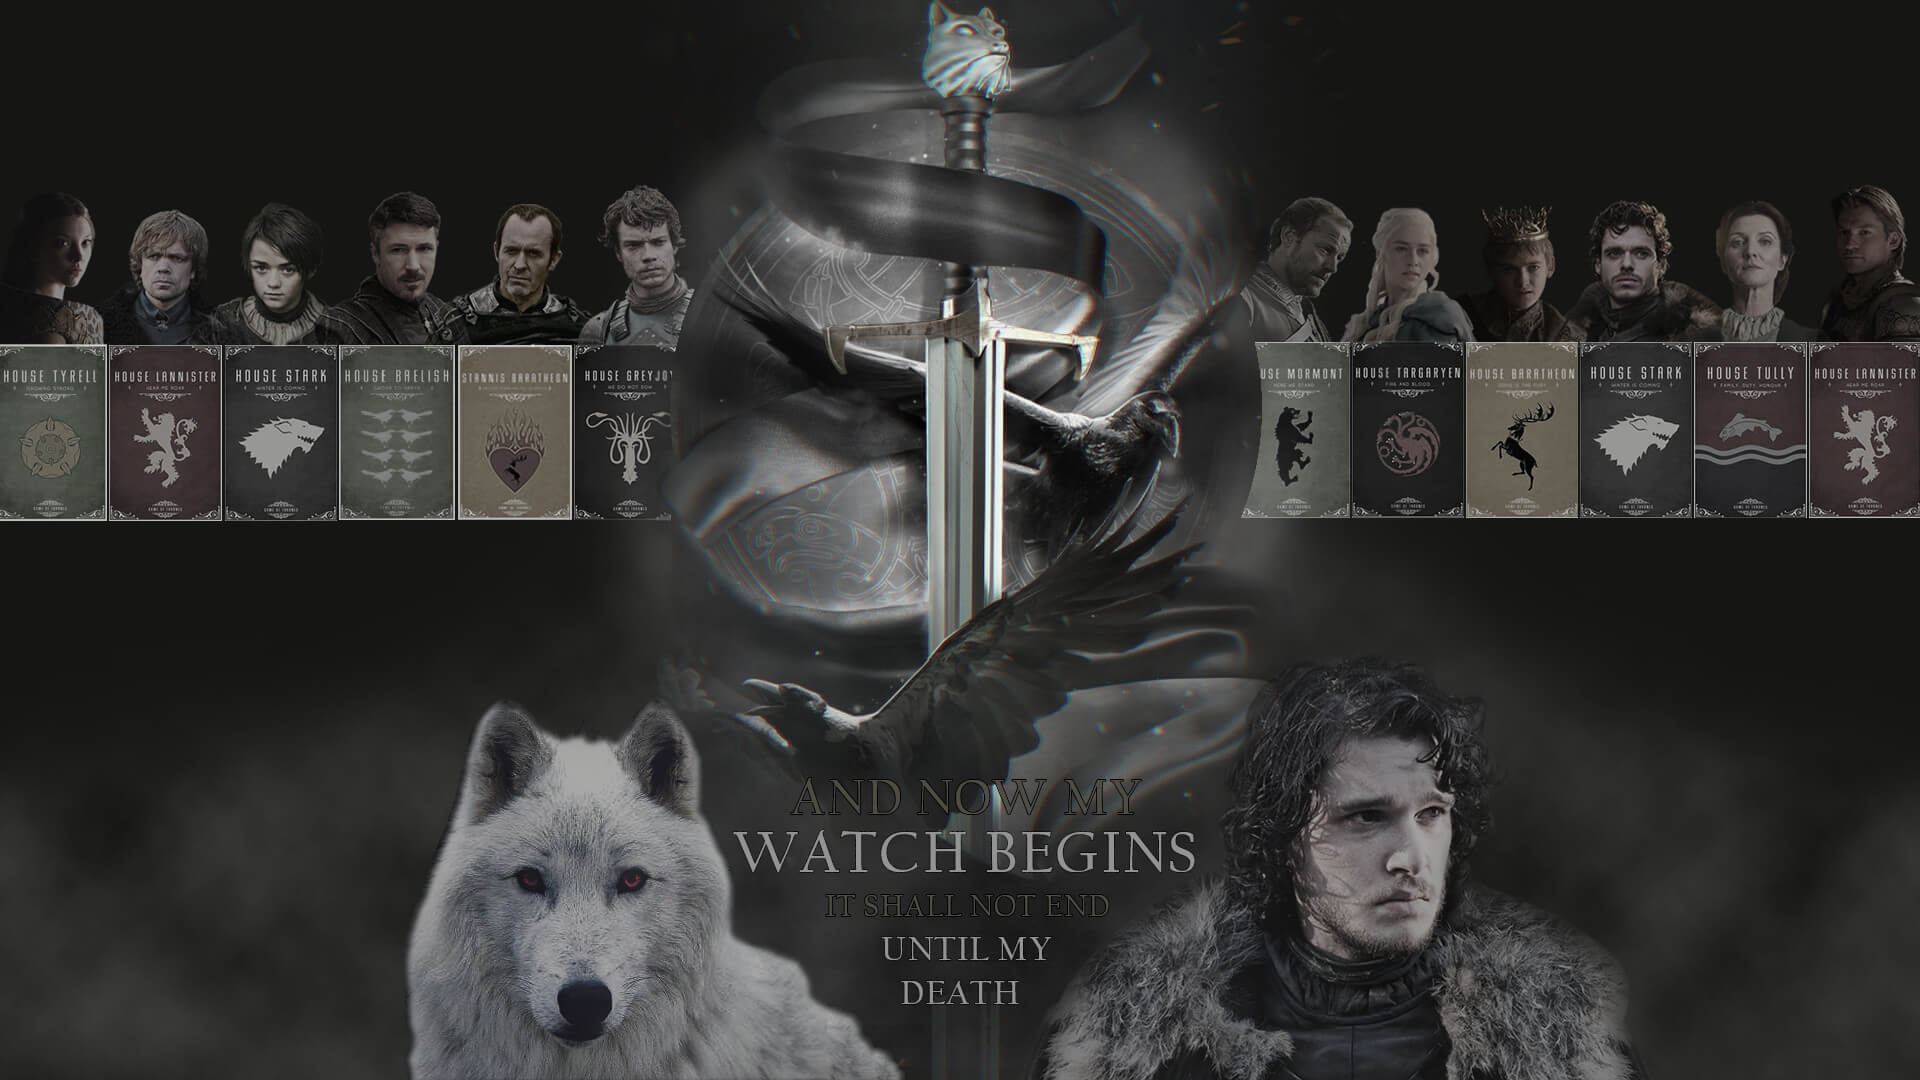 Game Of Thrones Wallpaper Reddit HD4Wallpapernet 1920x1080